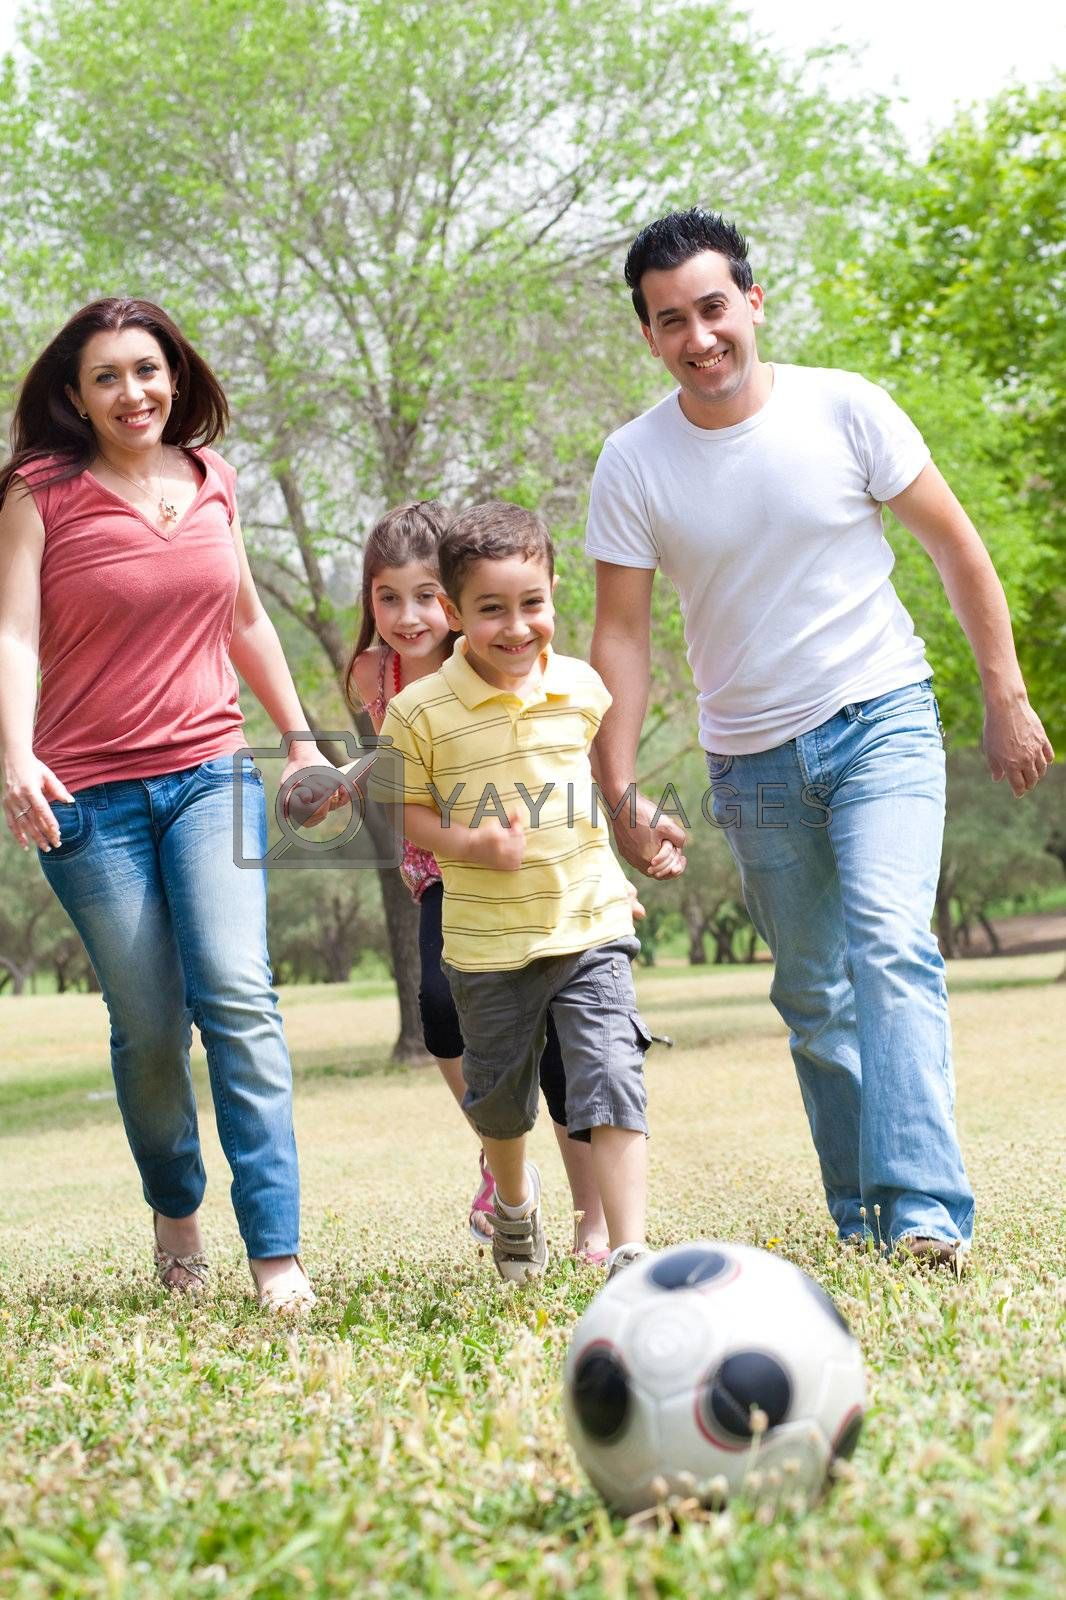 Family outdoor playing soccer and having fun